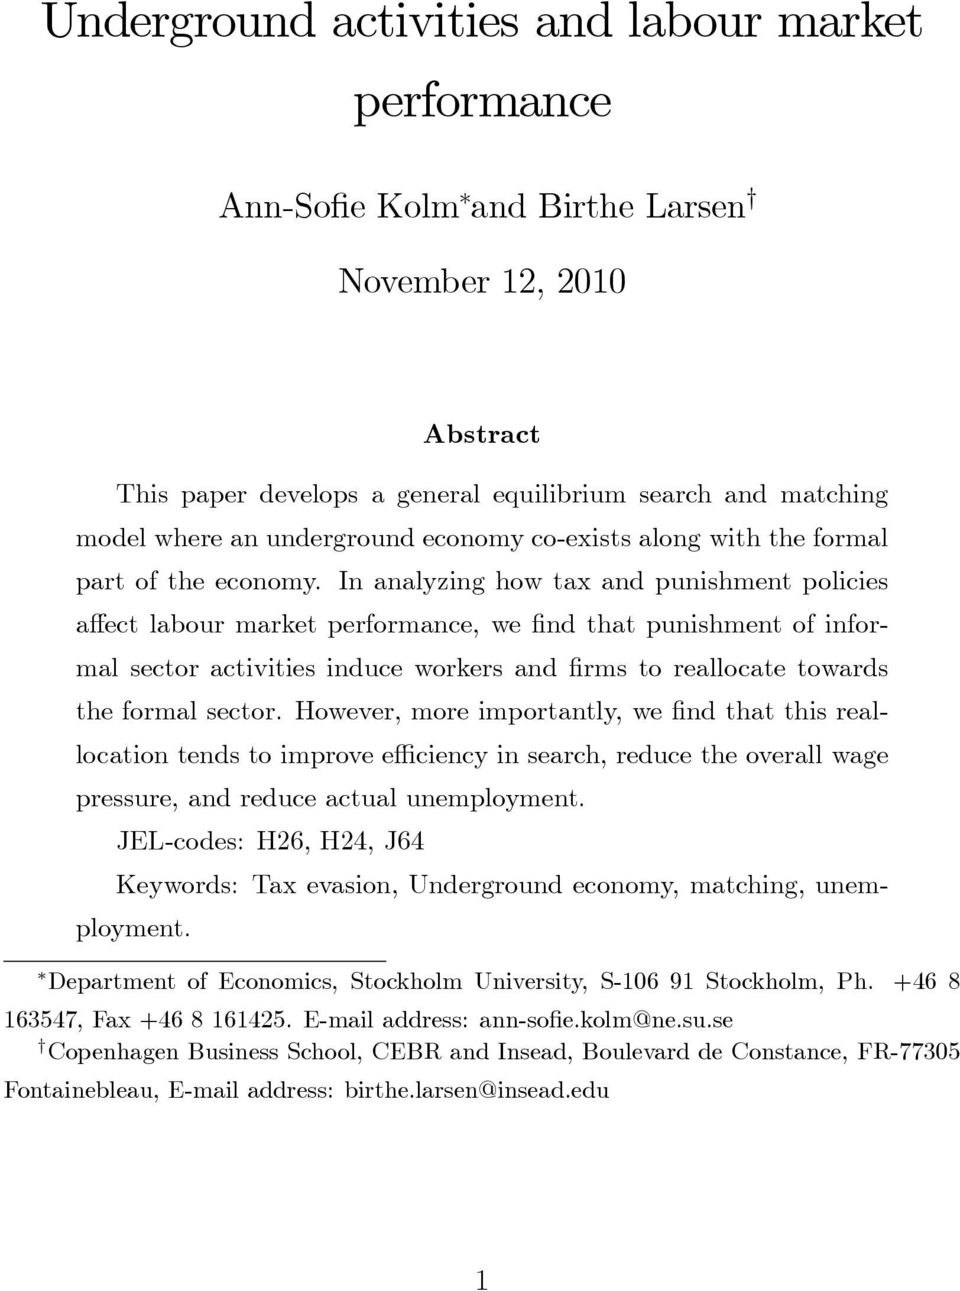 In analyzing how tax and punishment policies affect labour market performance, we find that punishment of informal sector activities induce workers and firms to reallocate towards the formal sector.